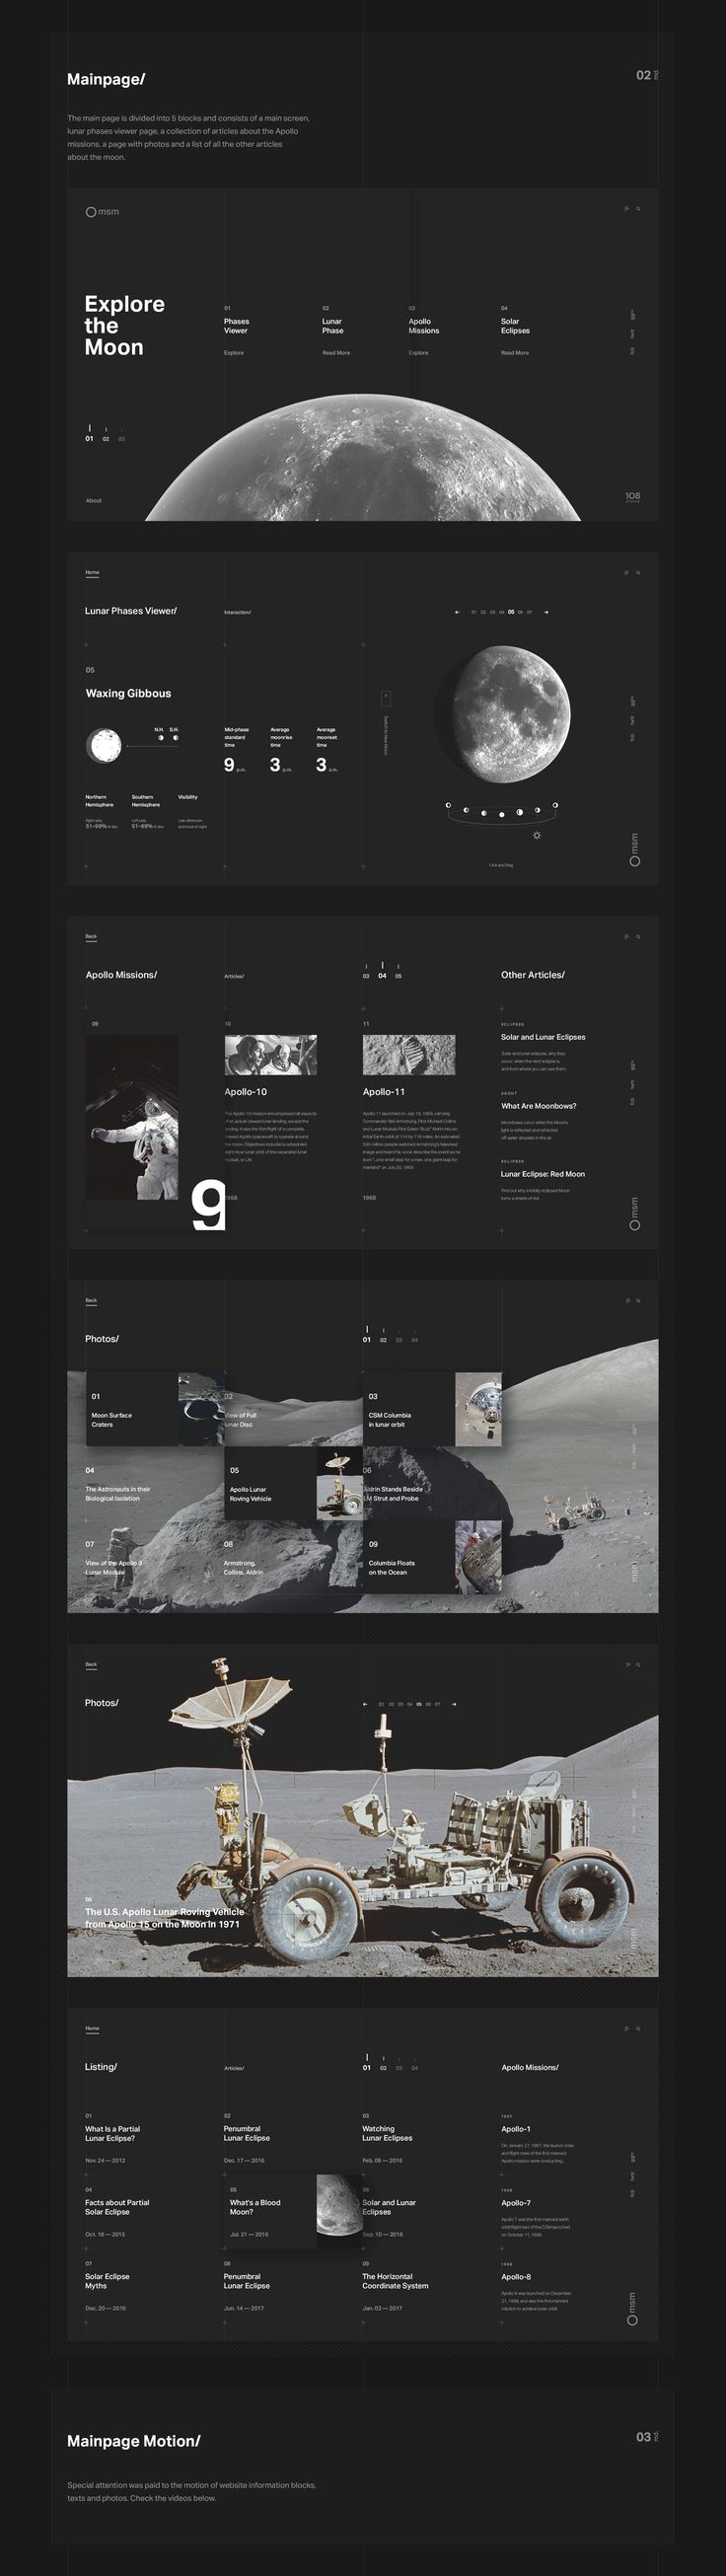 Explore the Moon on Behance